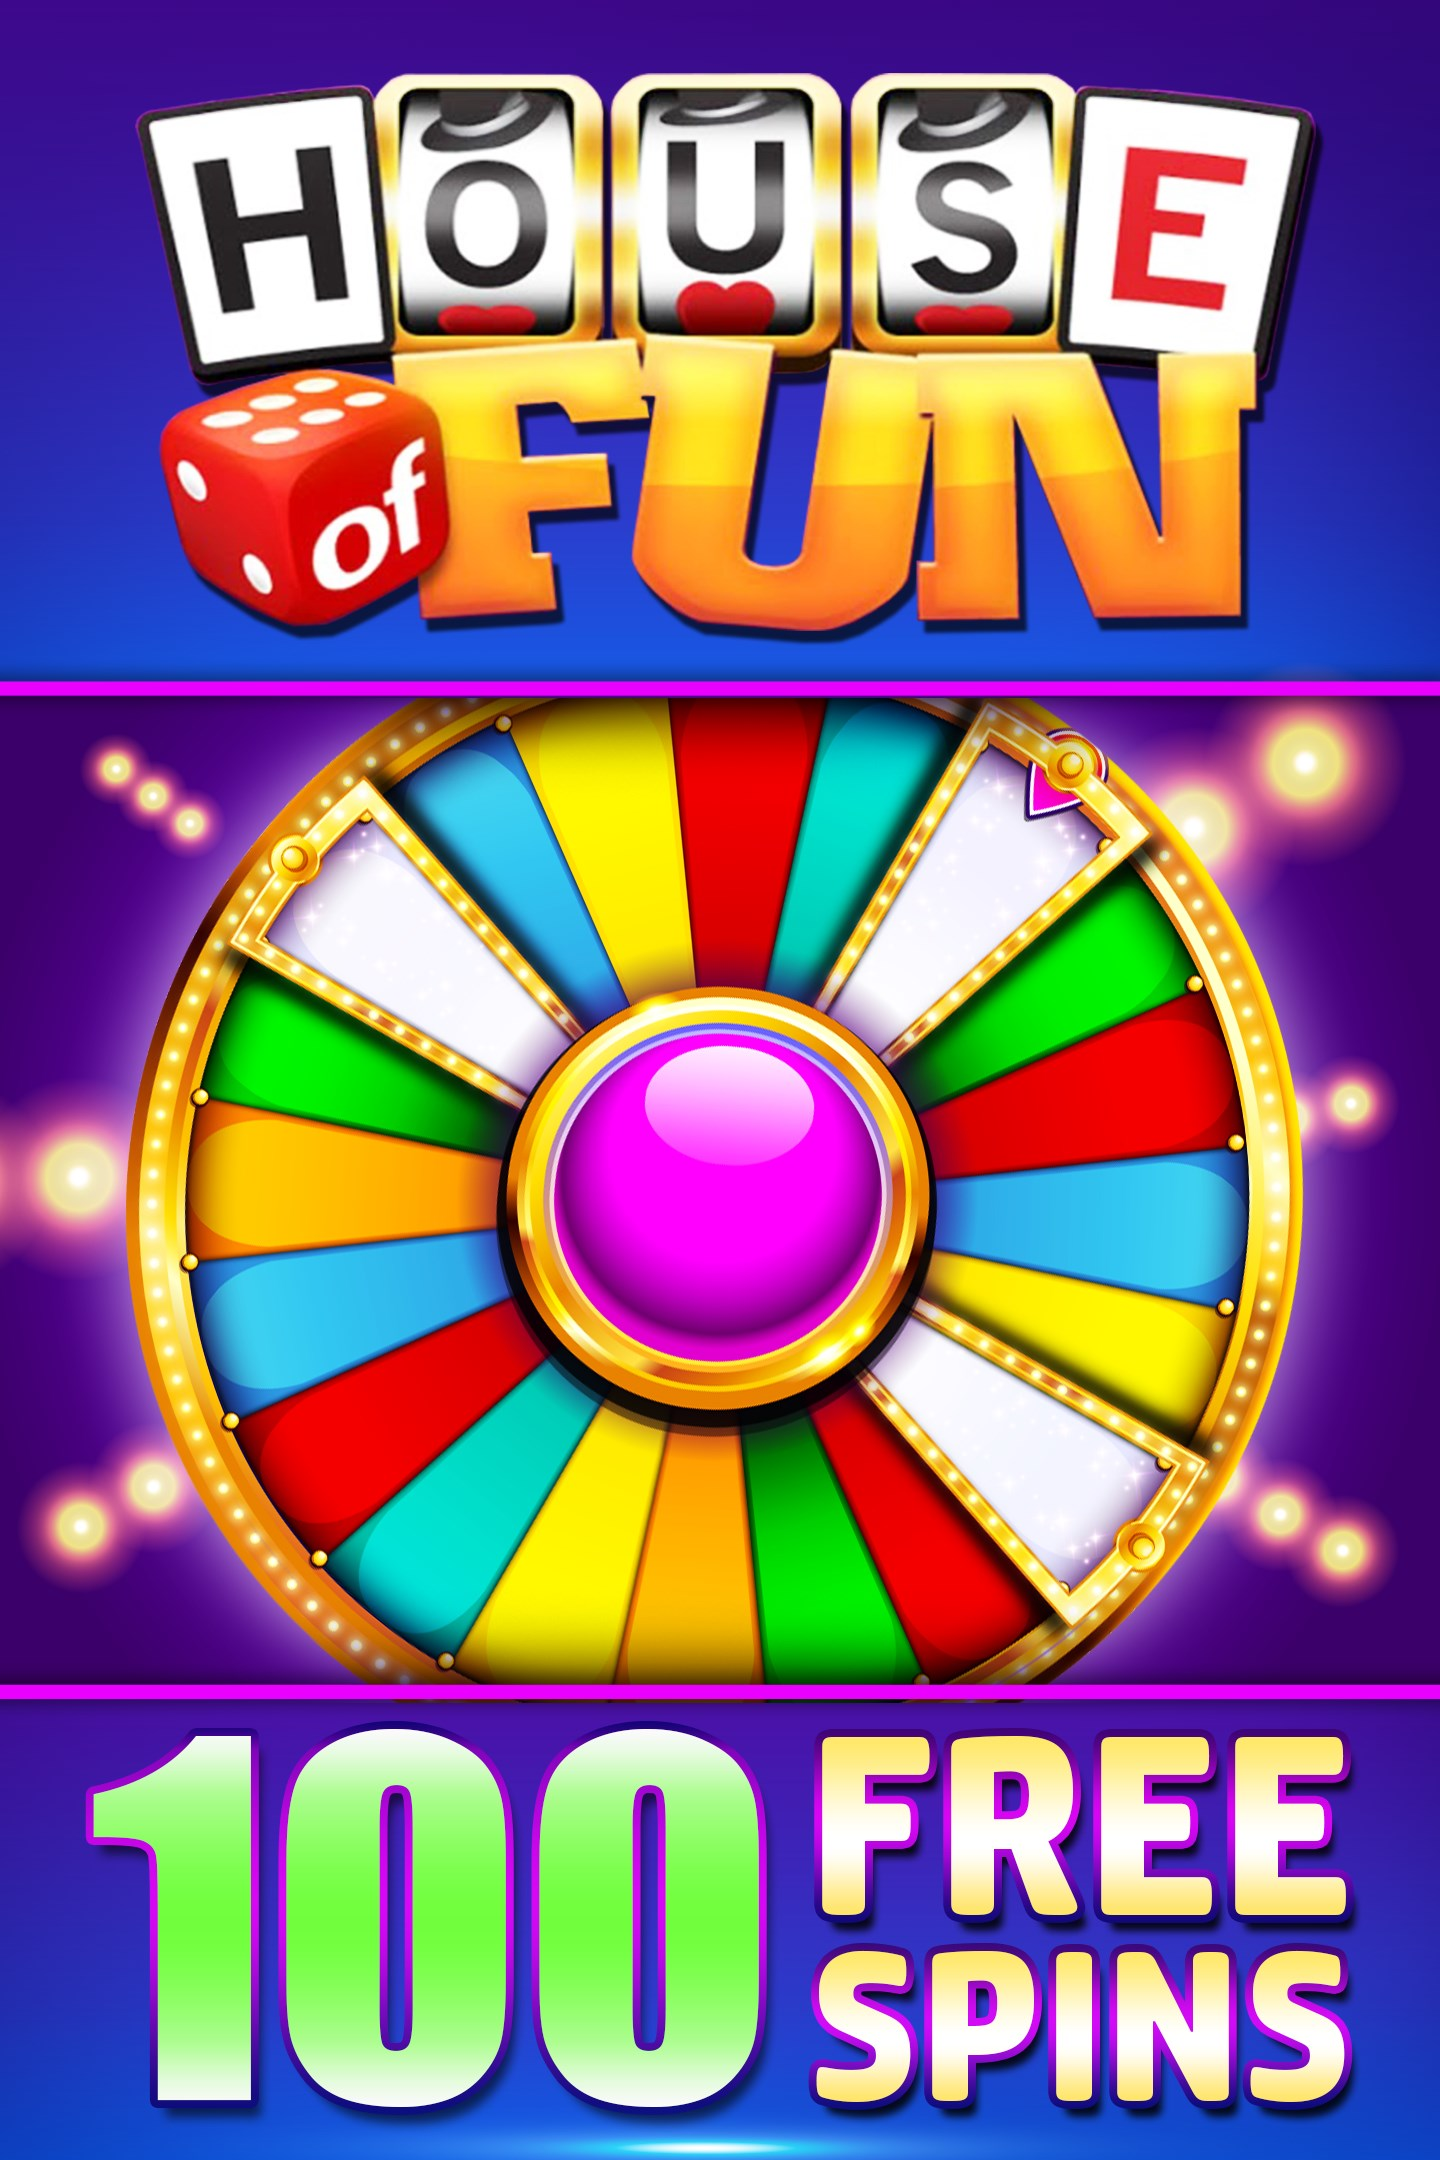 Free Online Slot Games to Play for Fun | House of Fun